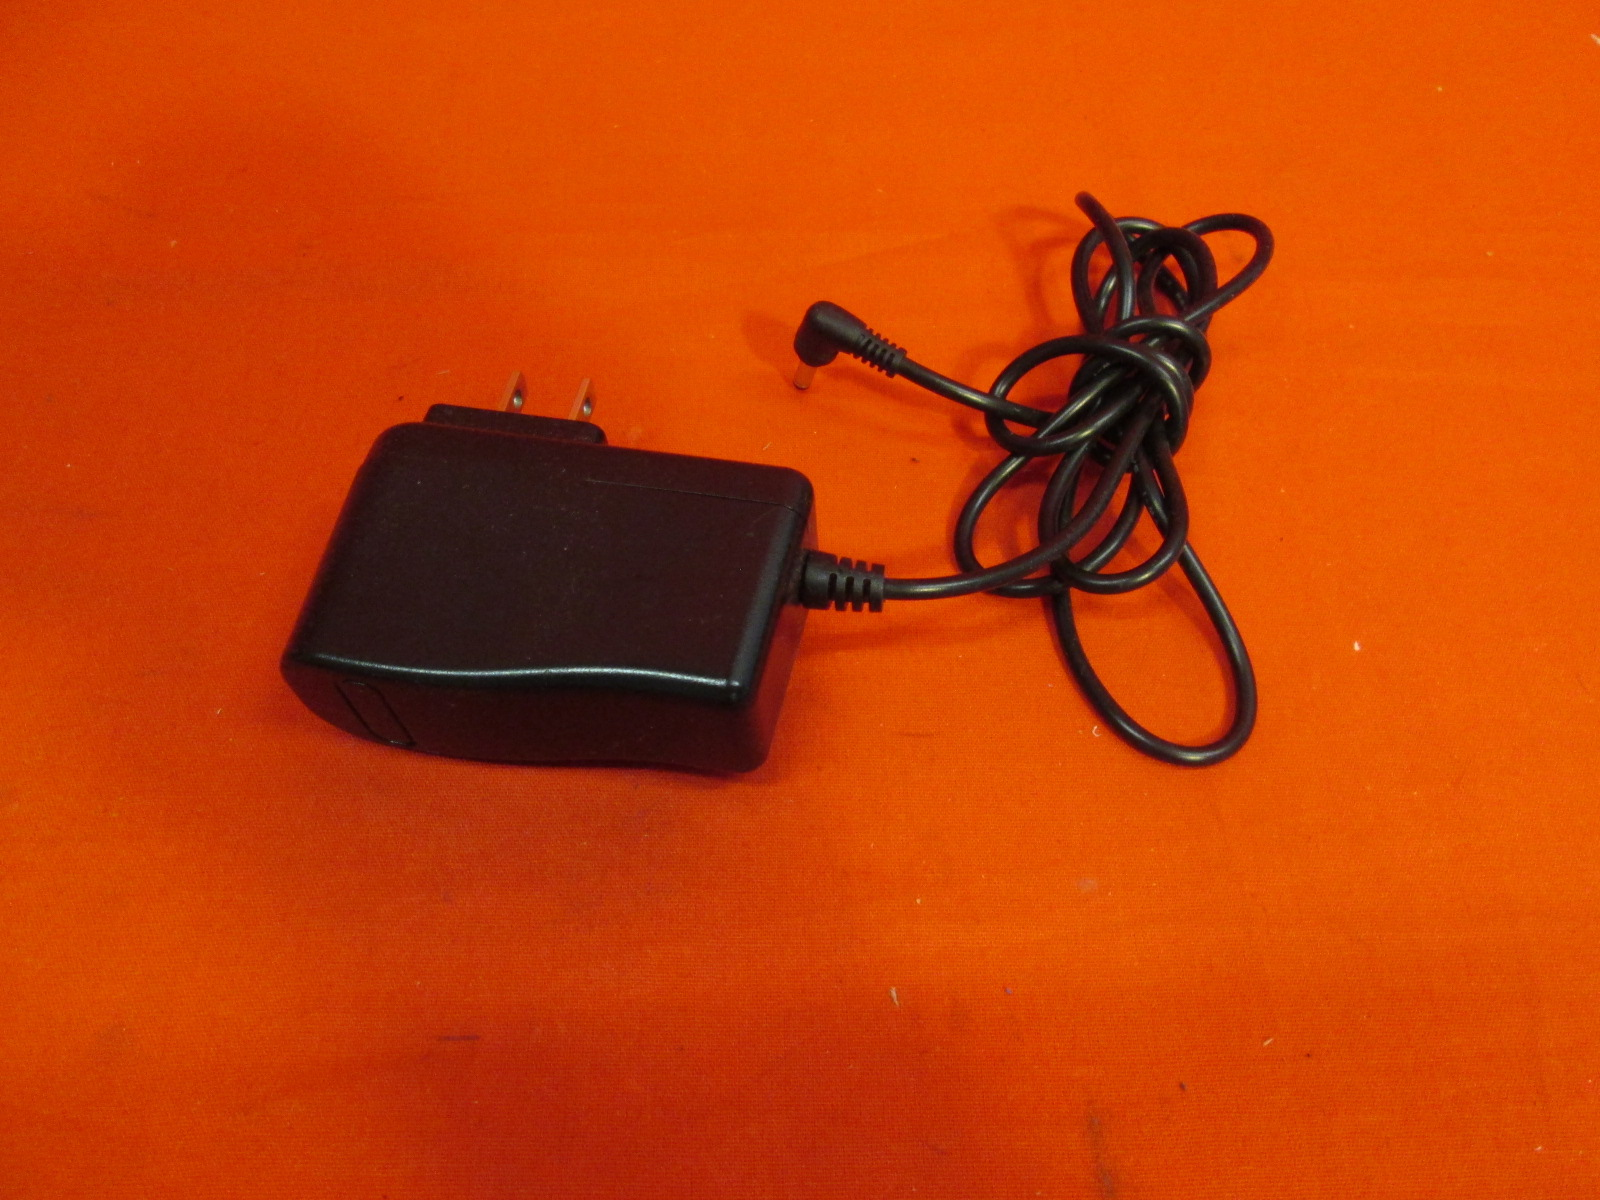 5V AC/DC Adapter Charger Power Supply Cord 3.5MM Tip